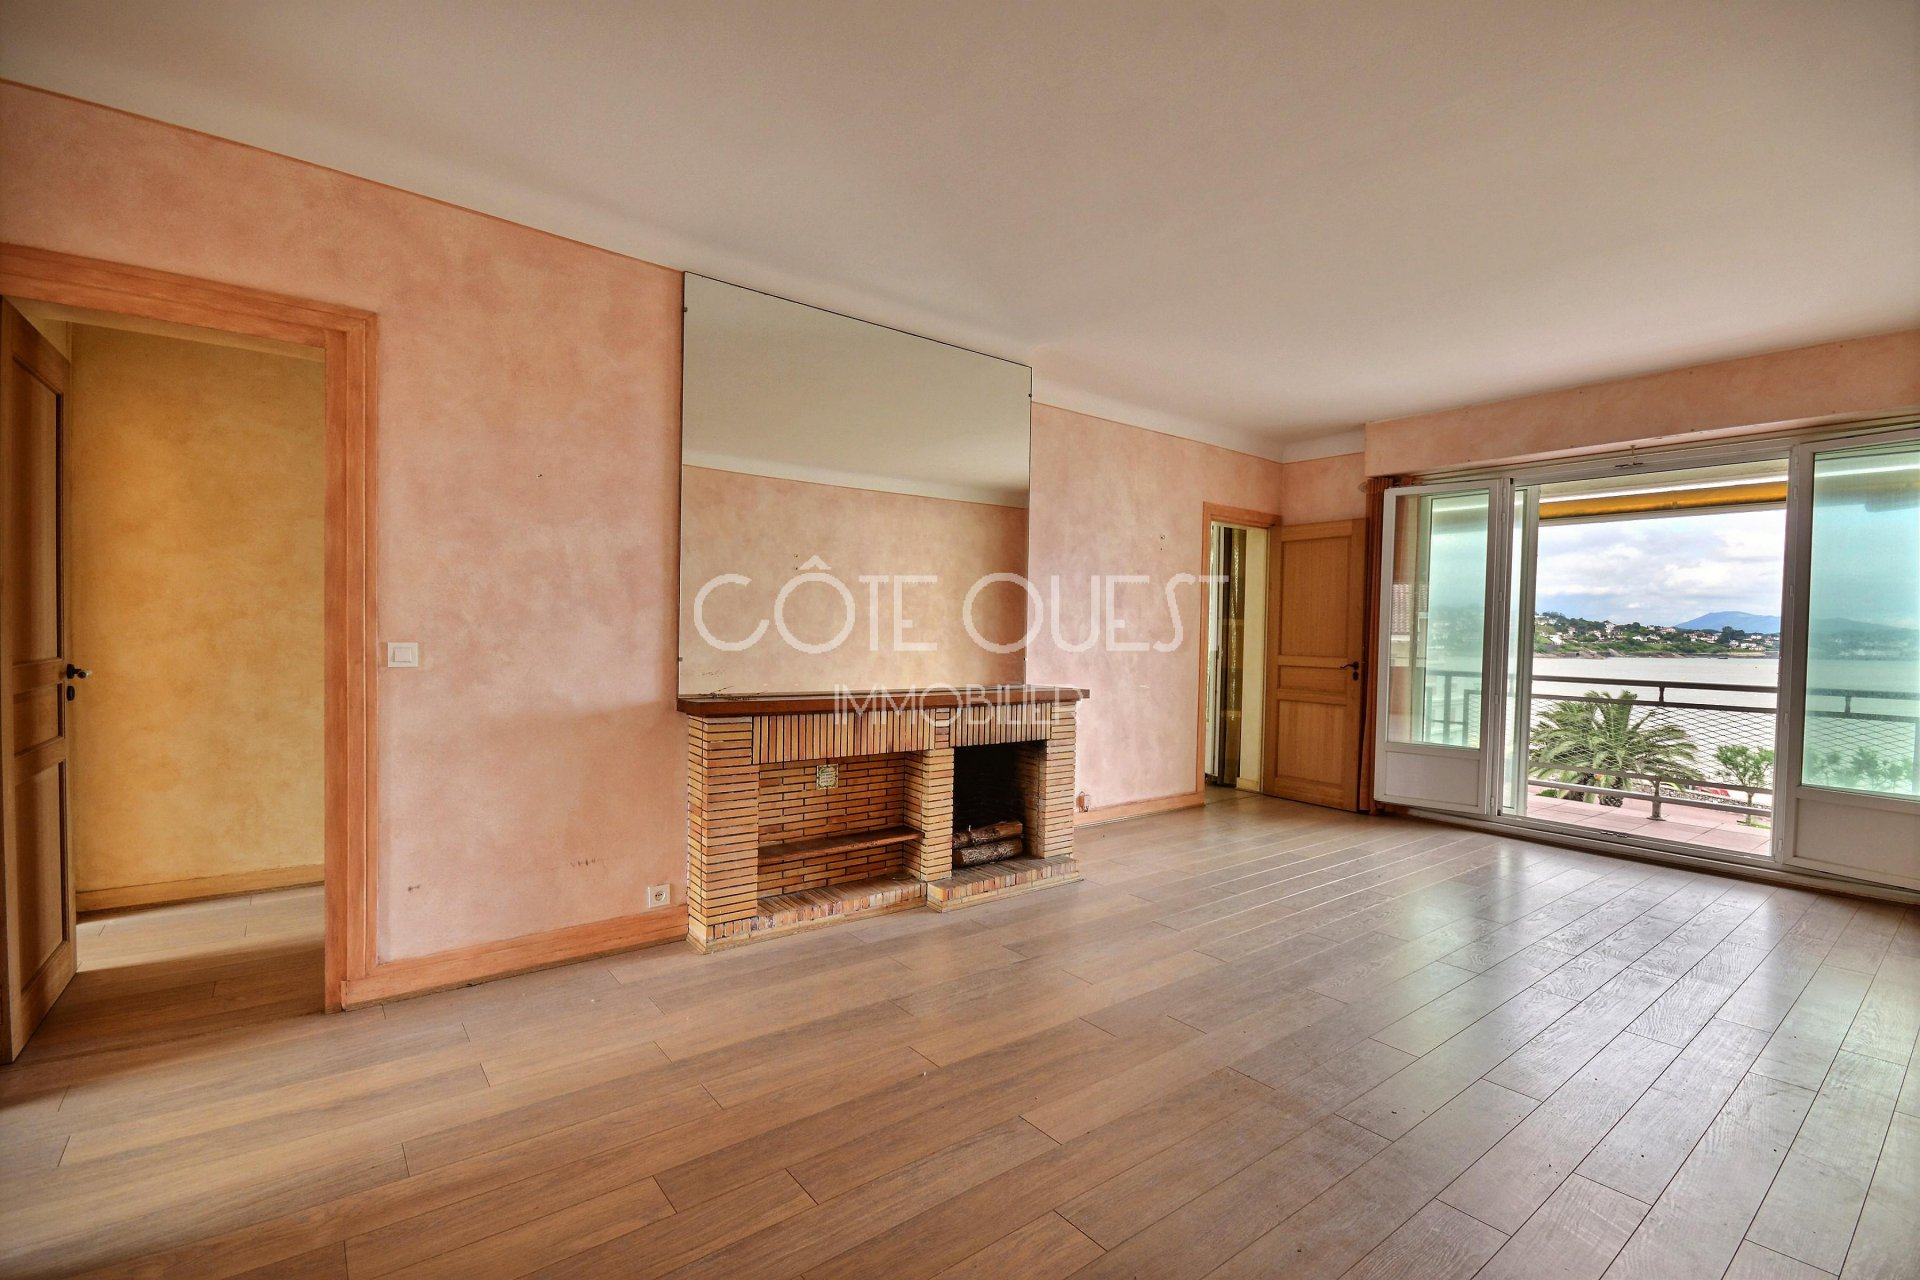 SAINT JEAN DE LUZ FOR SALE A 116 SQM APARTMENT ENJOYING AN OCEAN VIEW